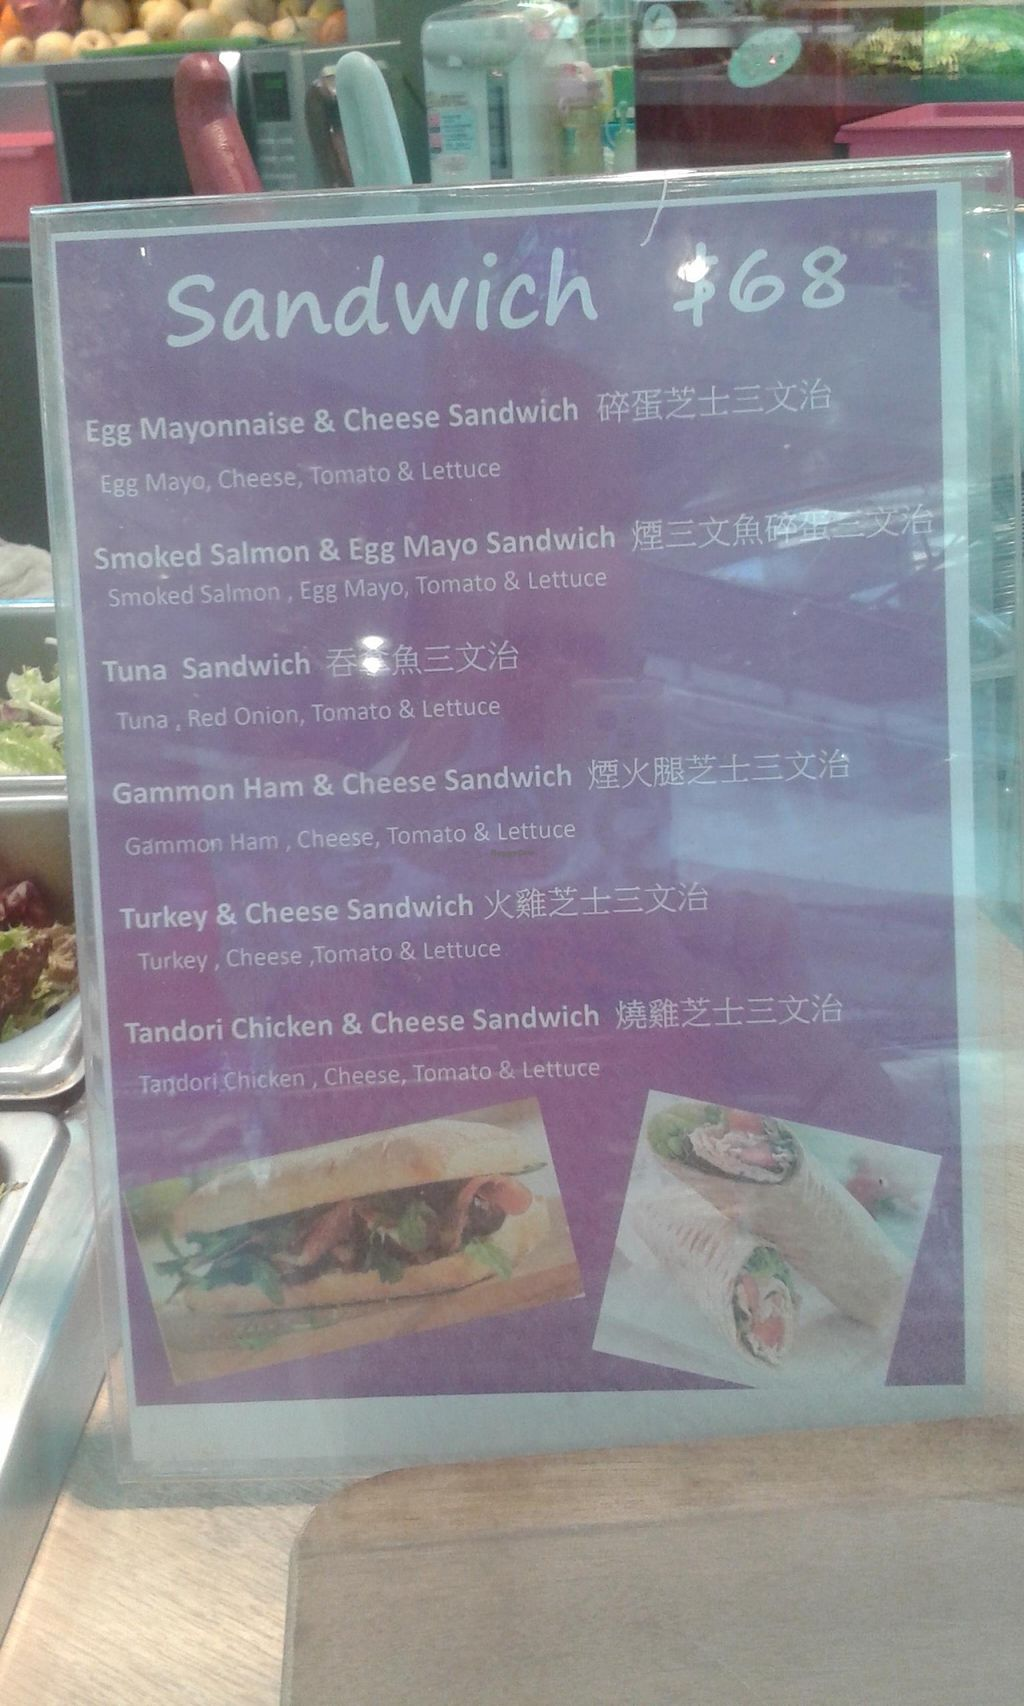 """Photo of CLOSED: Big Chill Juice Bar  by <a href=""""/members/profile/Stevie"""">Stevie</a> <br/>Sandwich menu <br/> October 24, 2015  - <a href='/contact/abuse/image/55543/122383'>Report</a>"""